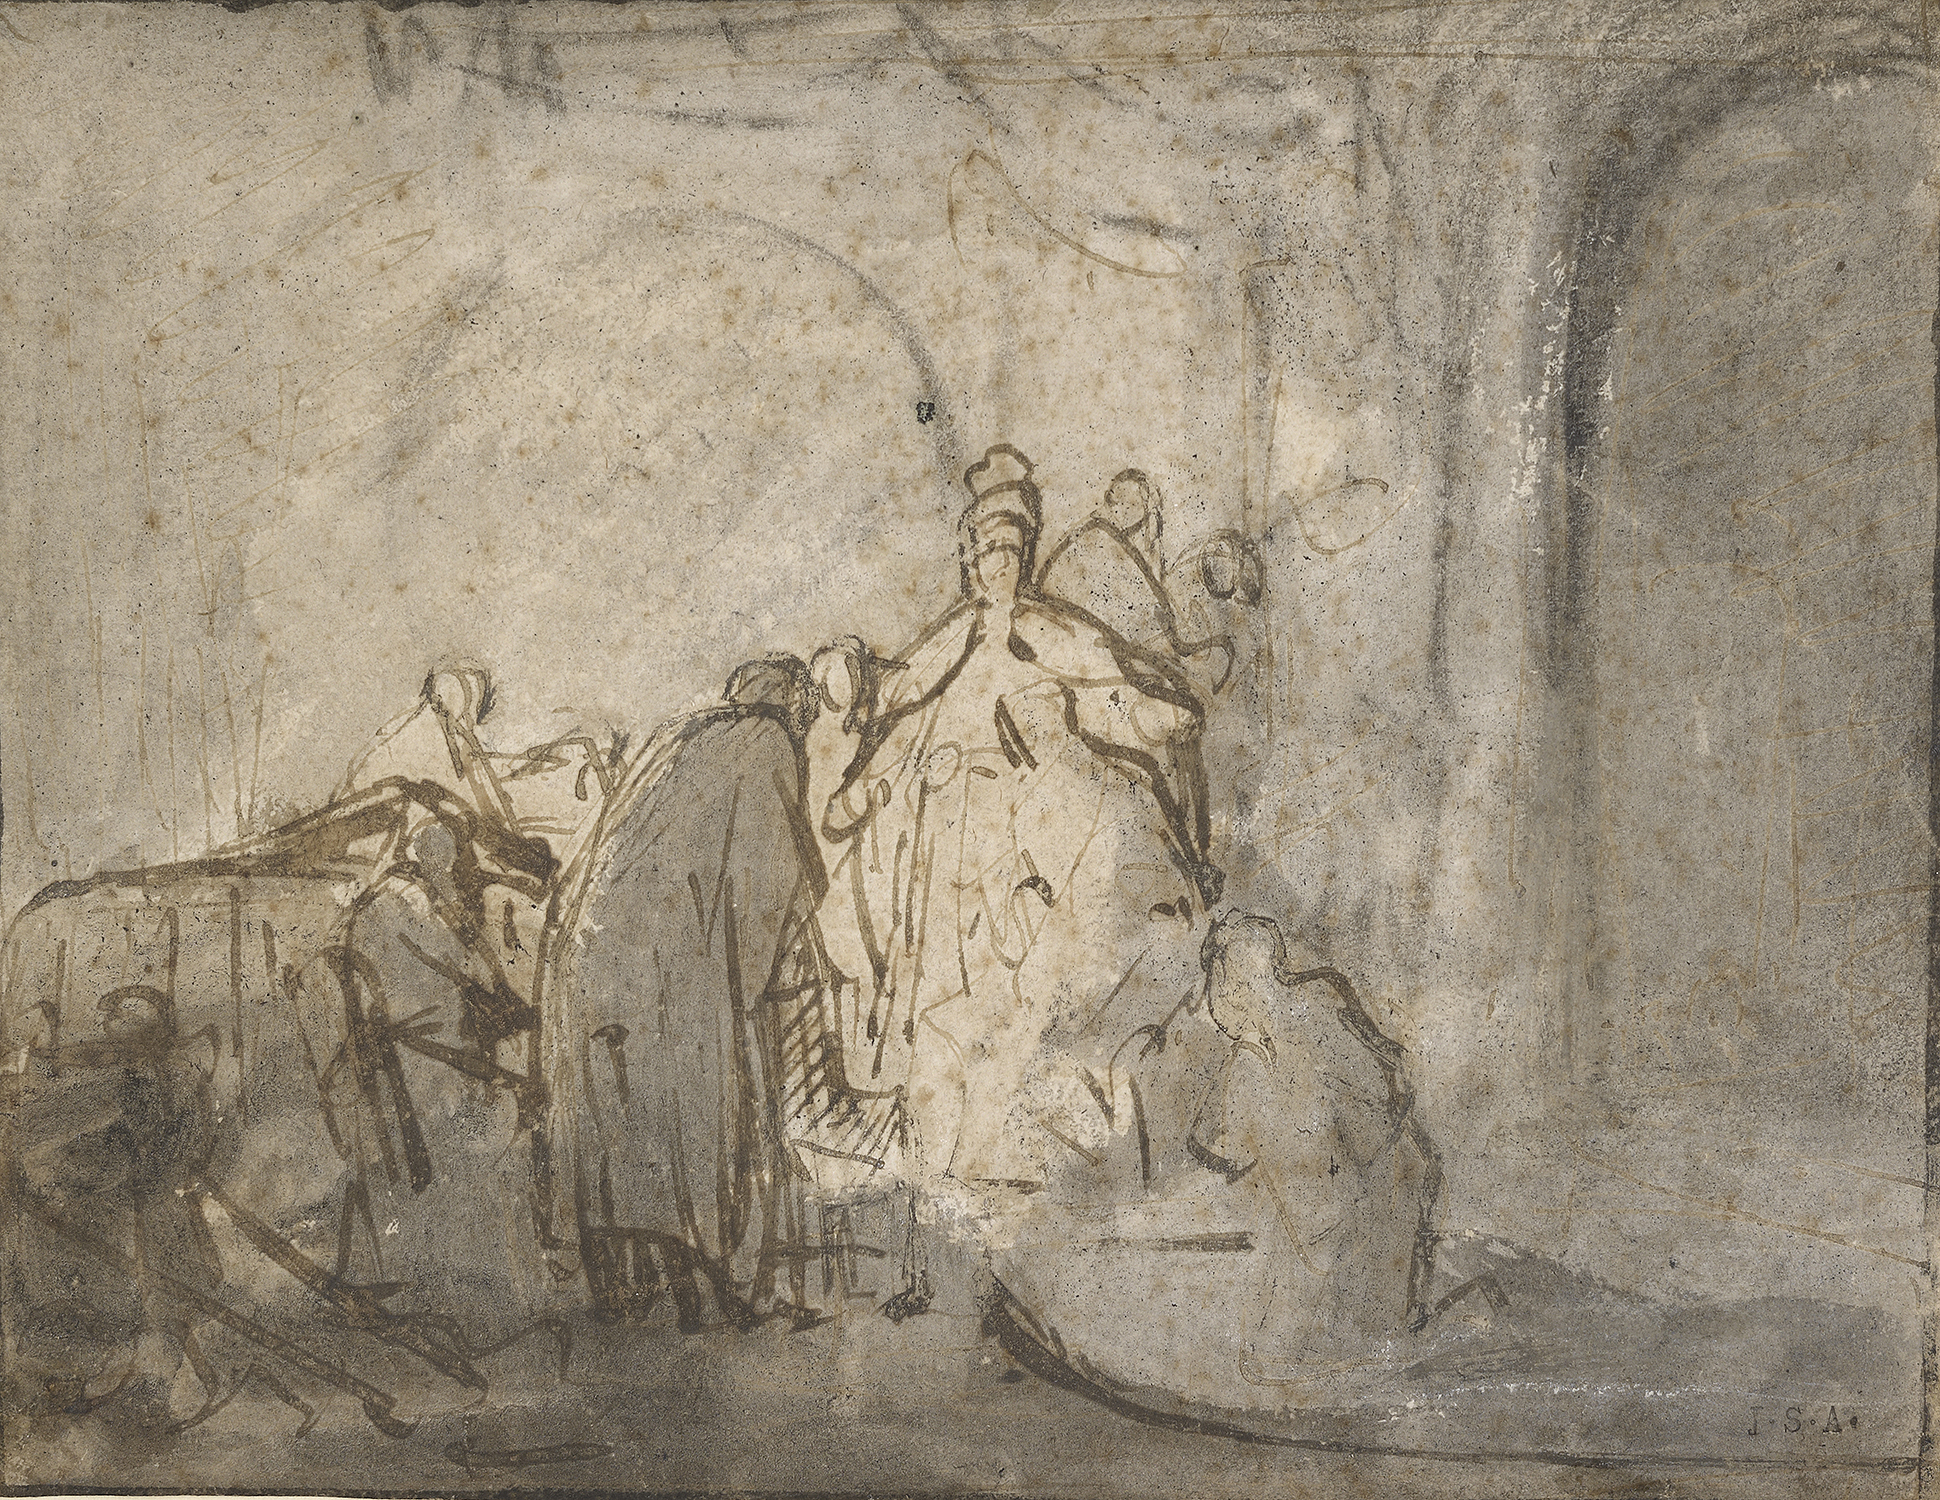 Rembrandt van Rijn (1606-1669), Judas Returning the Thirty Pieces of Silver (recto), ca. 1629, Pen and brown ink and gray wash over black chalk. Private collection.